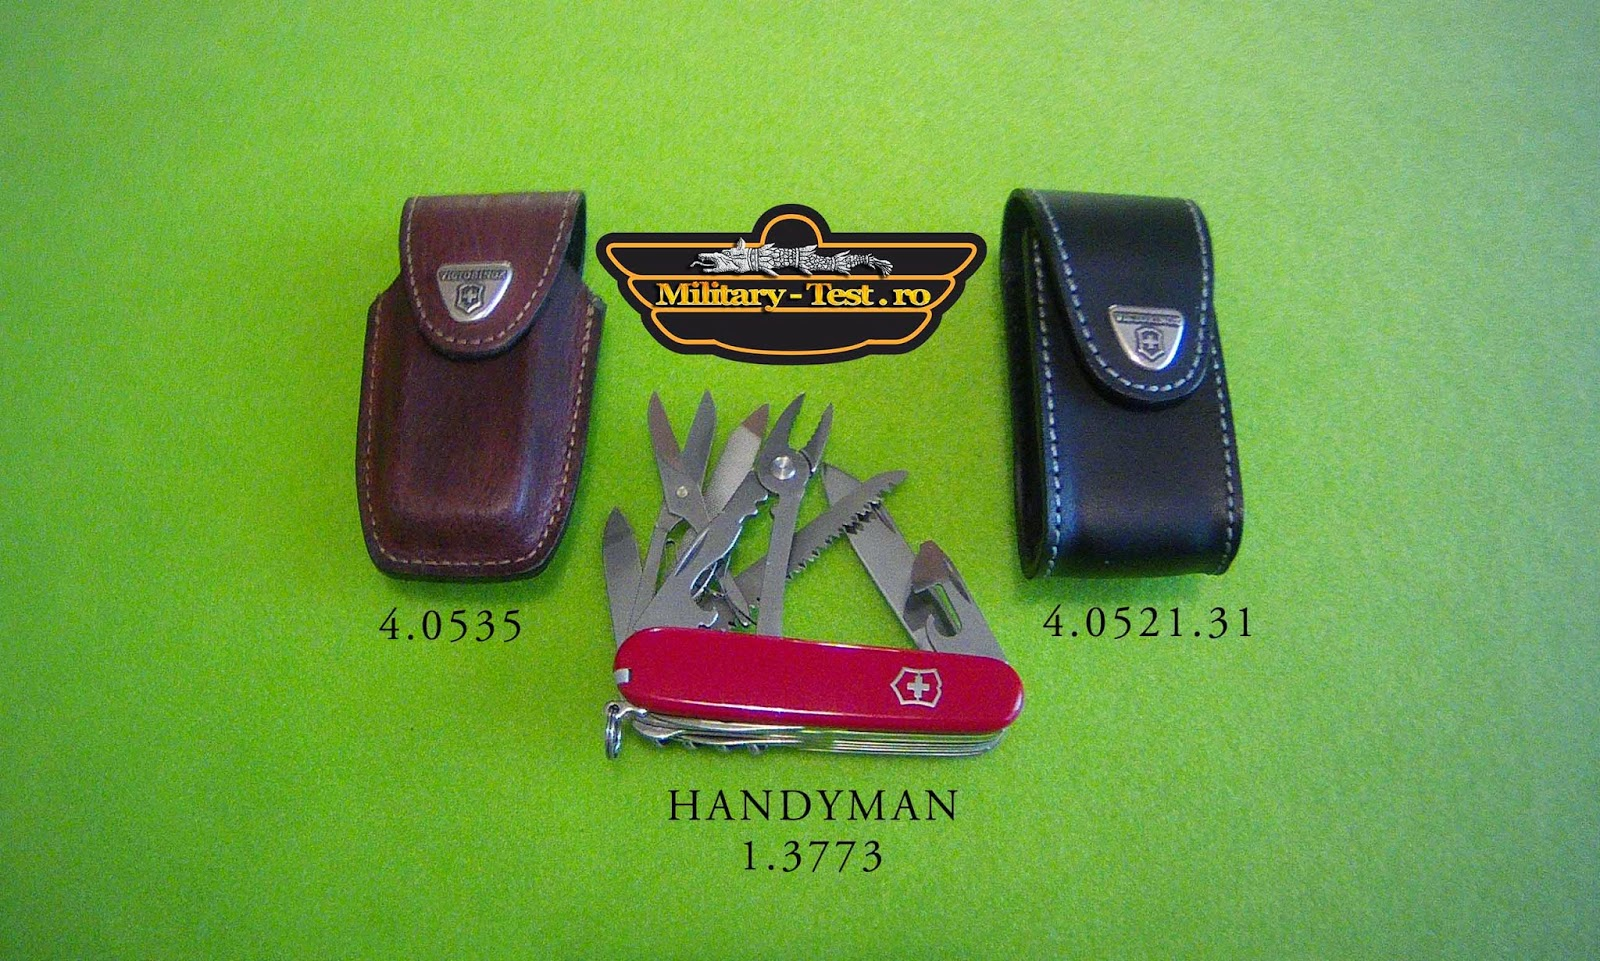 Knife Vicorinox Handyman 1.3773